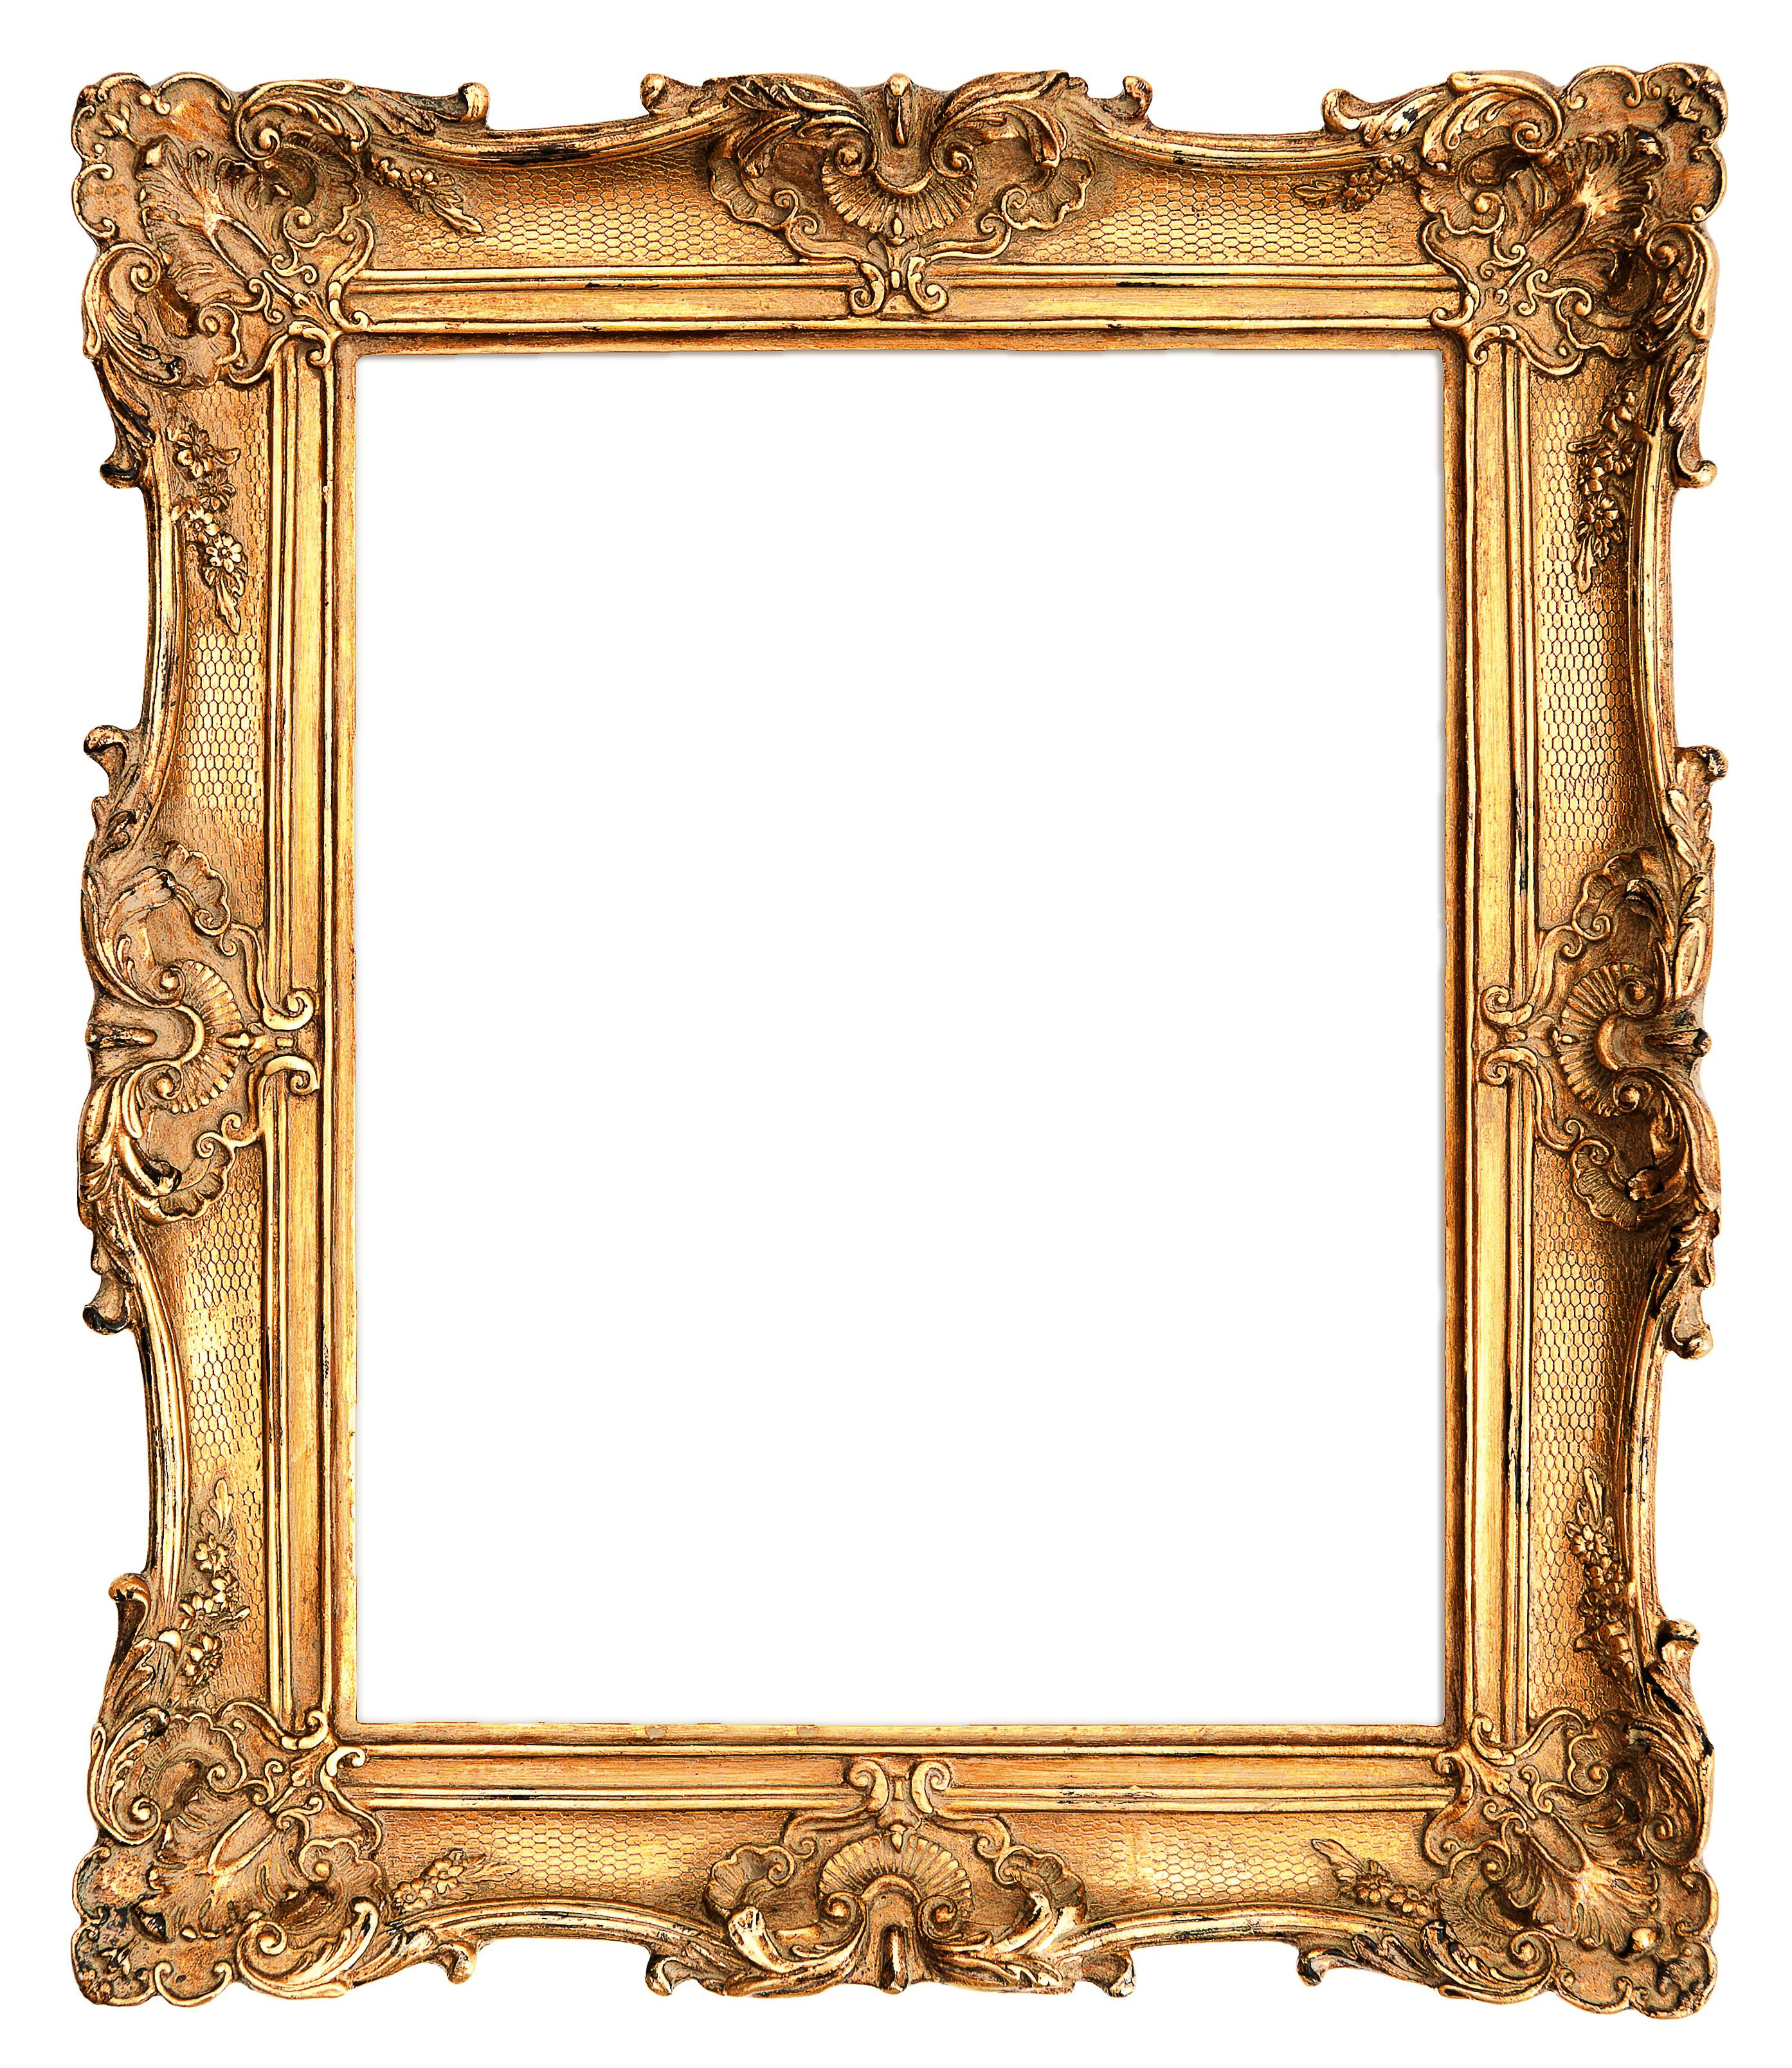 Old Frames for Jewelry holder